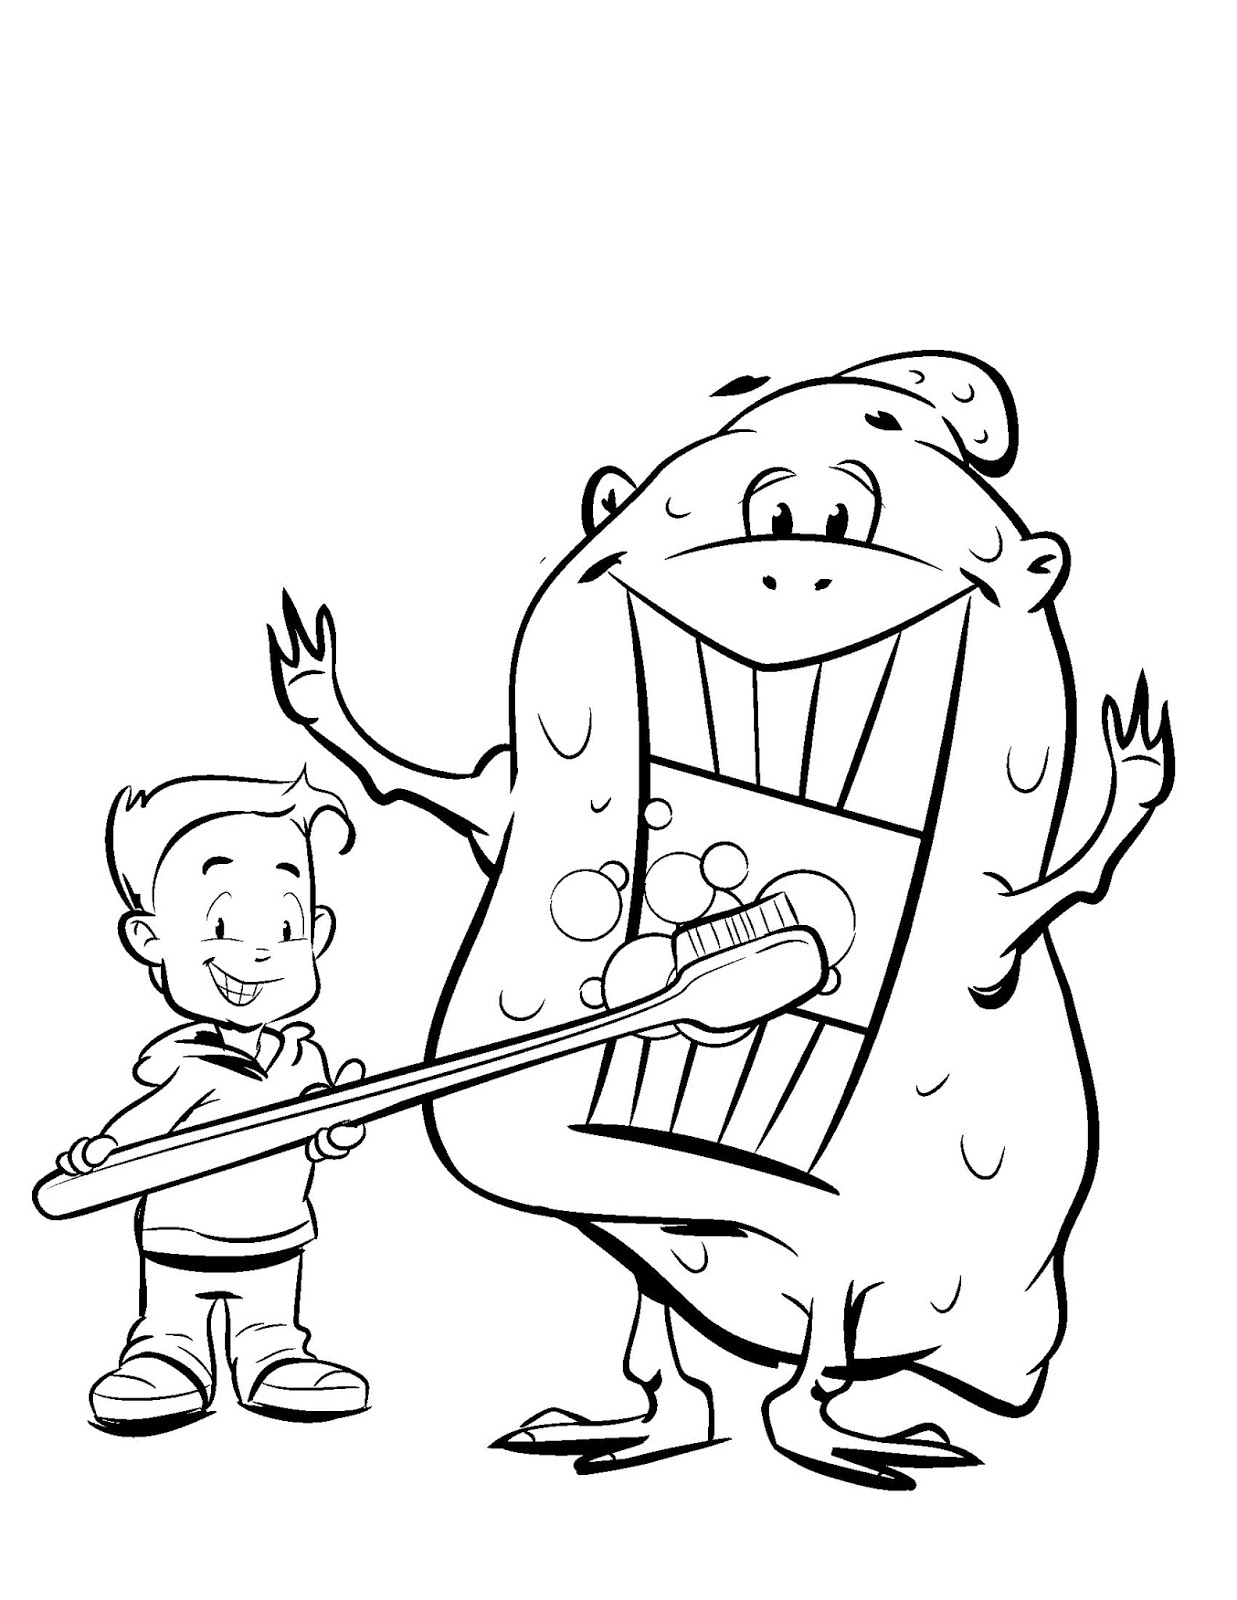 Picture for educational coloring pages health safety coloring pages